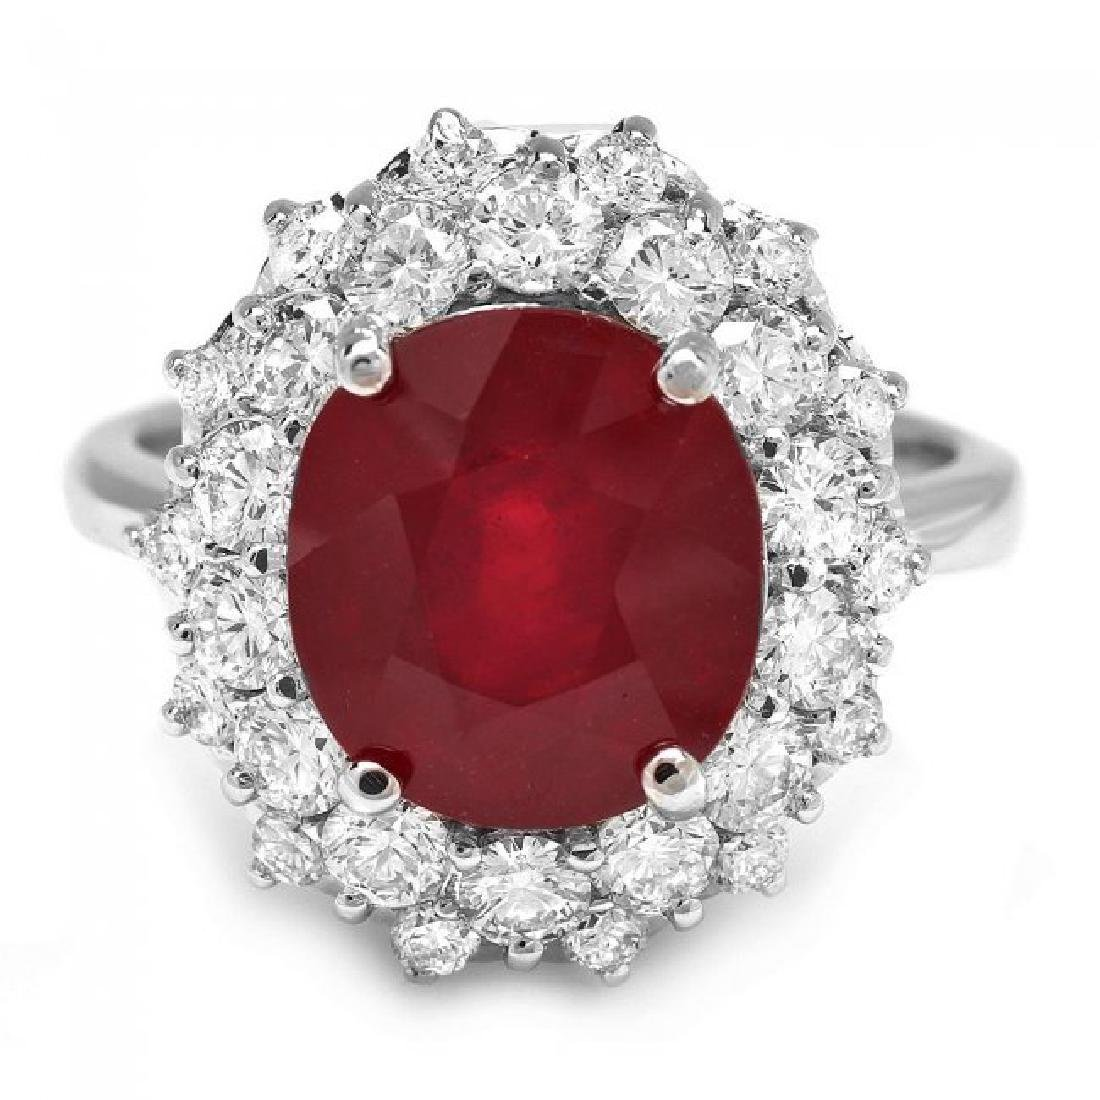 14k White Gold 6.50ct Ruby 1.50ct Diamond Ring - 2